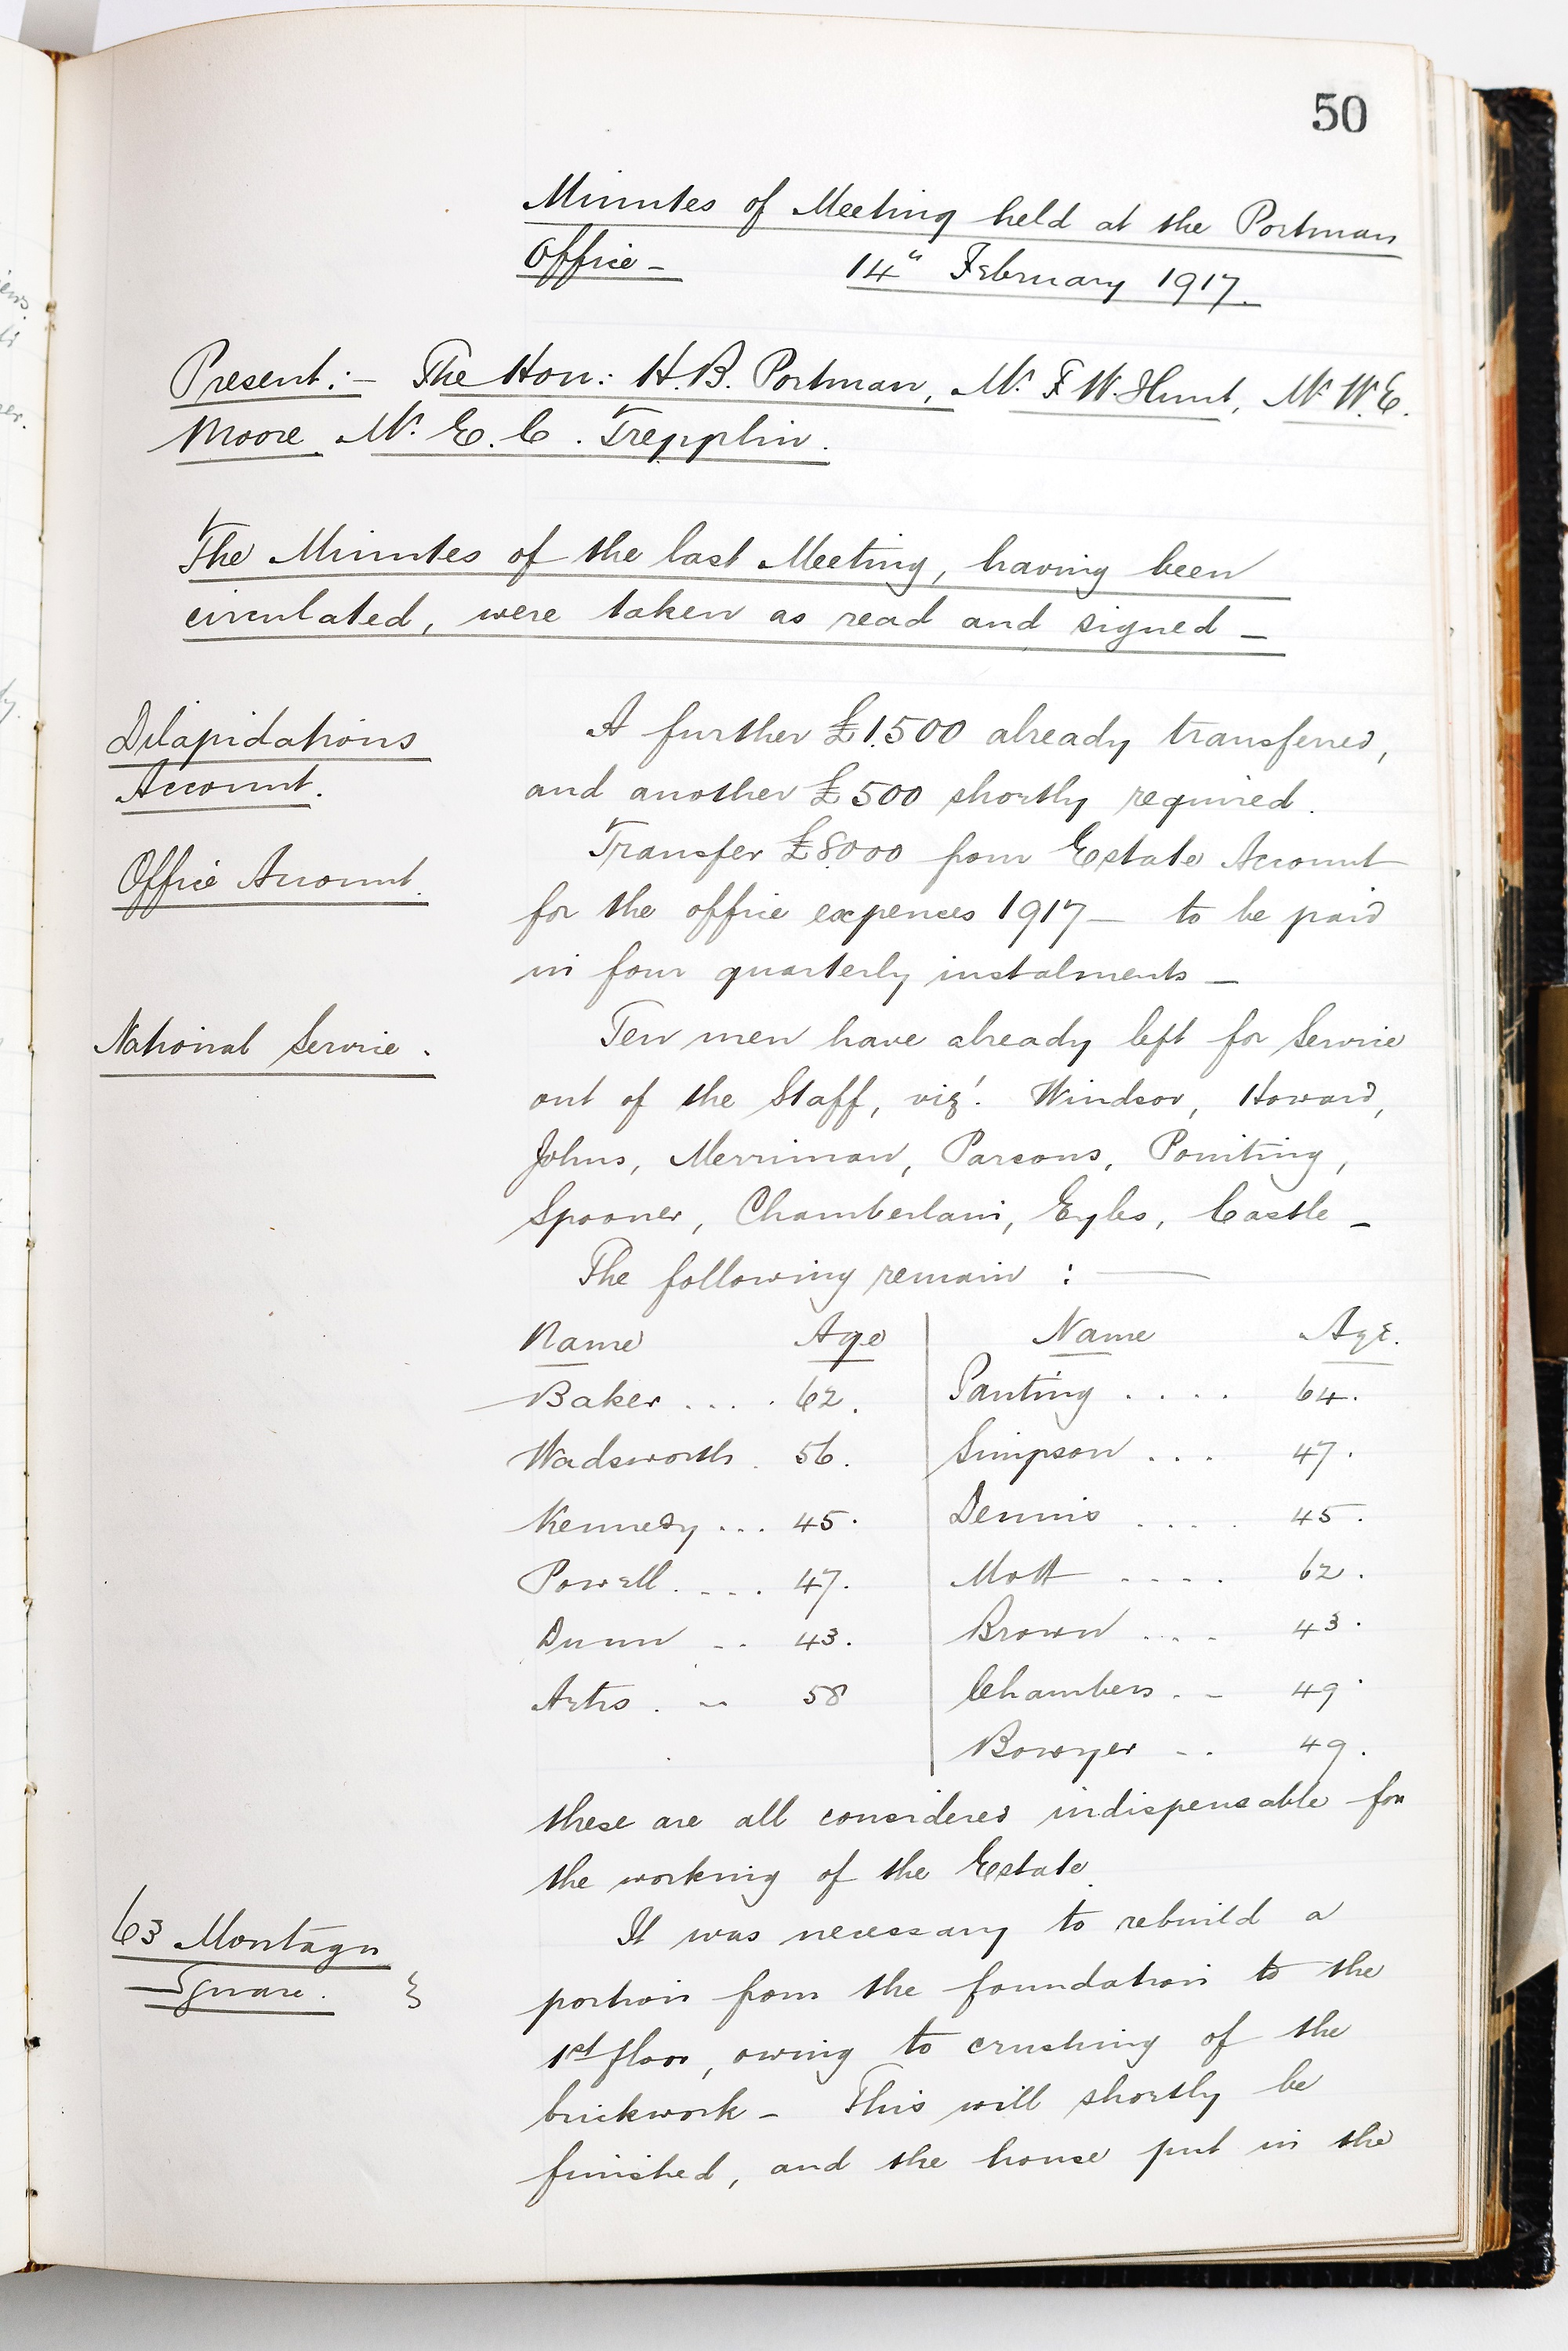 An entry in The Portman Estate Minute Book February from 1917 records names of those serving in the forces (10 men) and those left in the estate office.